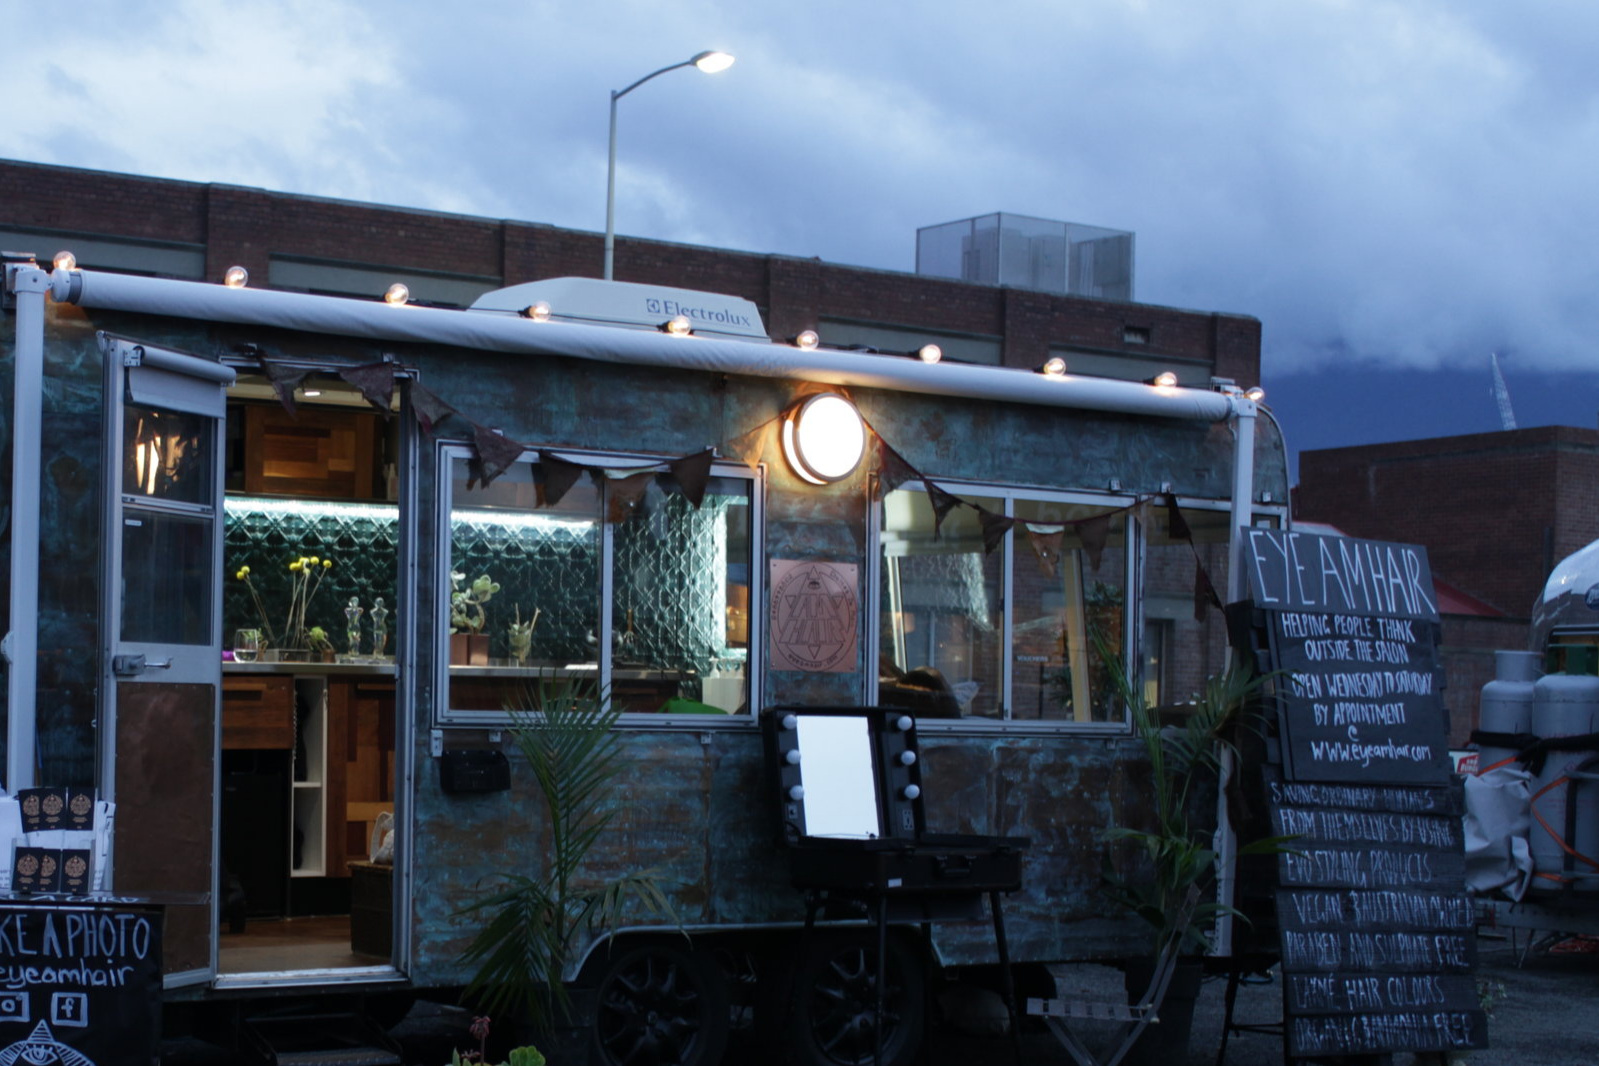 Find the copper caravan at Macquarie Point, Red Sqaure. - ADDRESS:14B EVANS STREET, HOBART, TASMANIA, AUSTRALIA, 7000.Parking available behind HOBART BREWING CO. & on Hunter and Evans st.Phone:0488998802